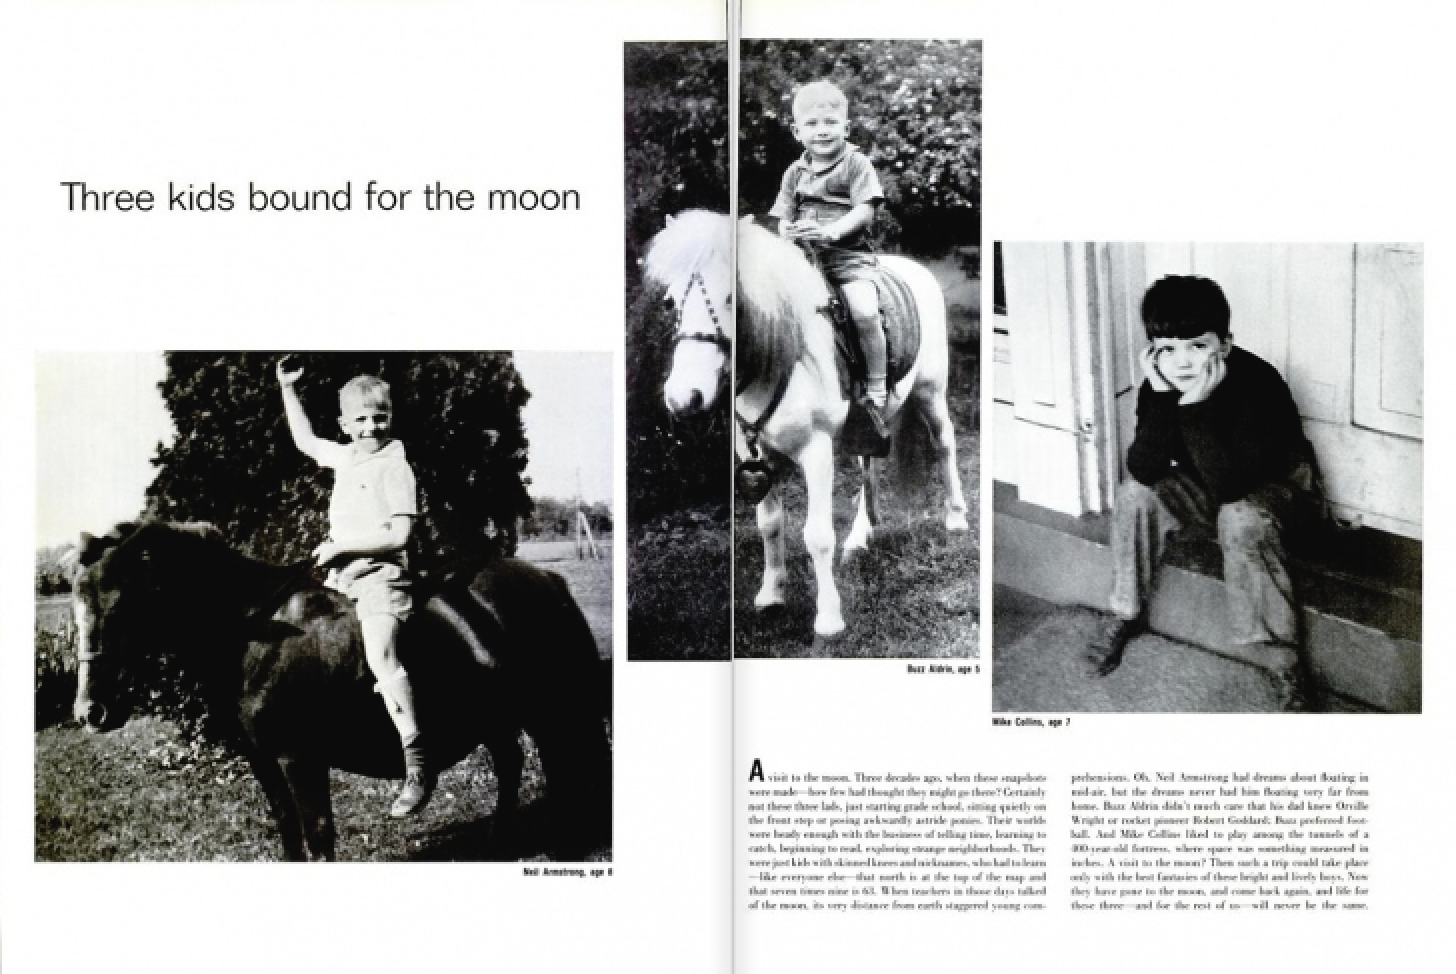 Armstrong, Aldrin, Collins - Life, 11 august 1969